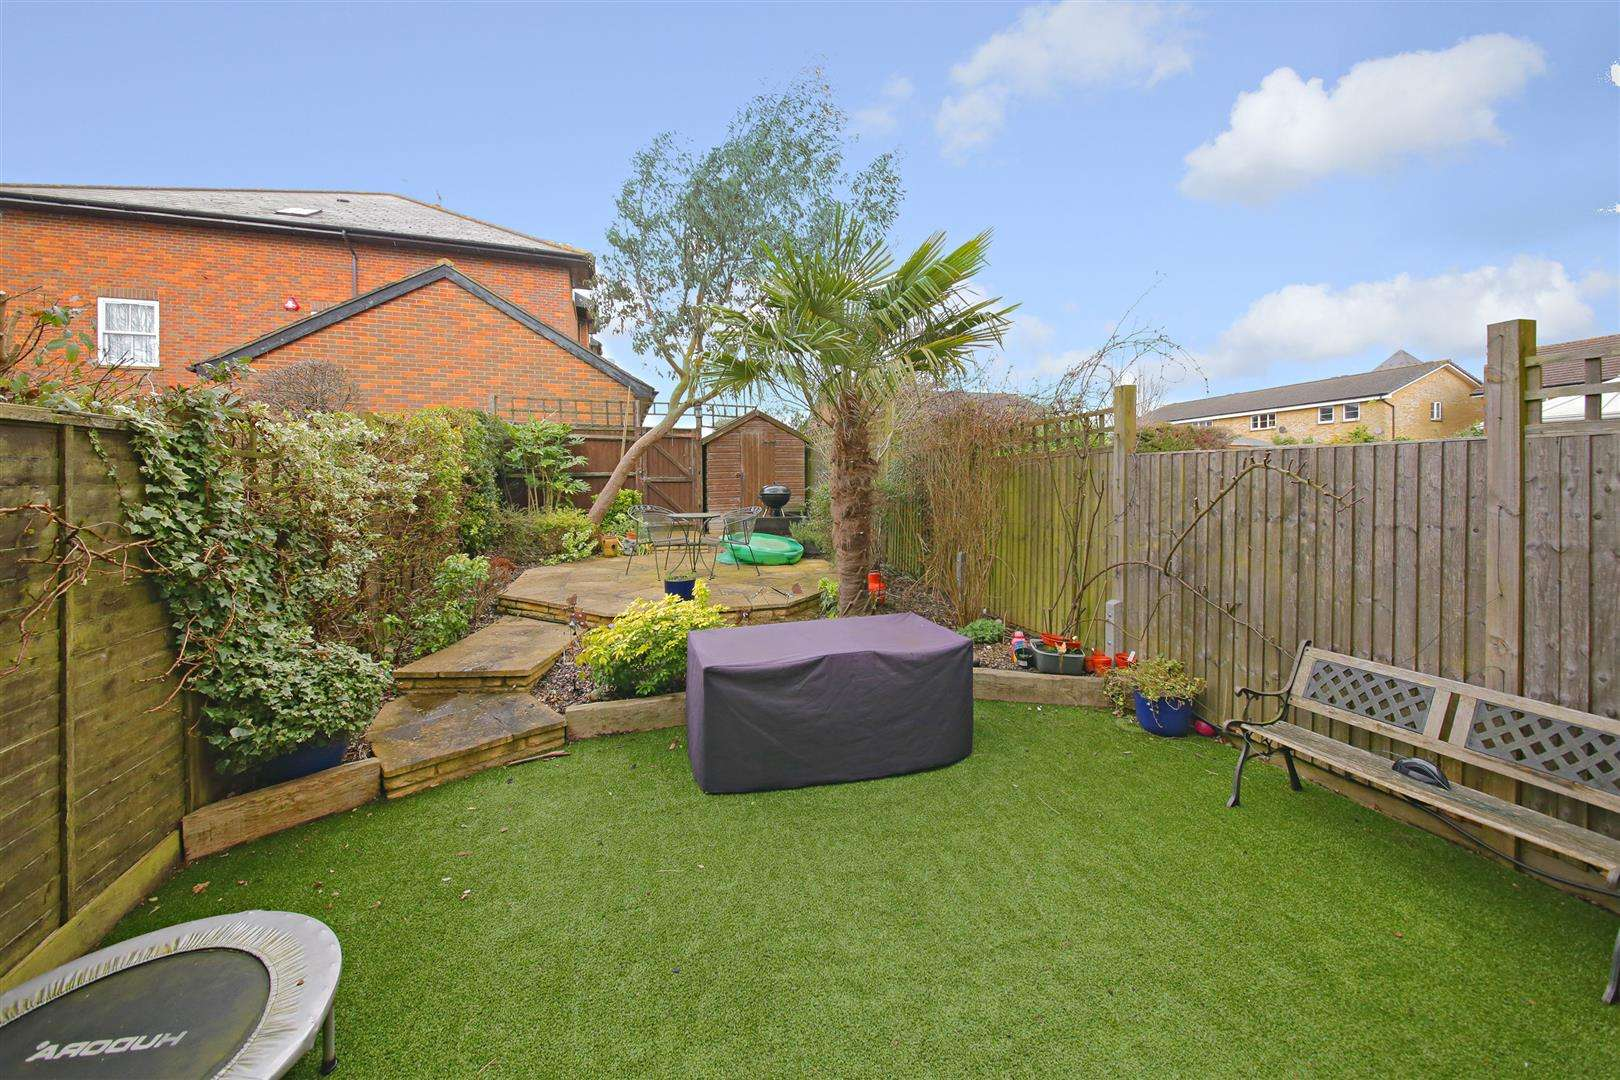 4 bed to rent in Shenley - (Property Image 13)